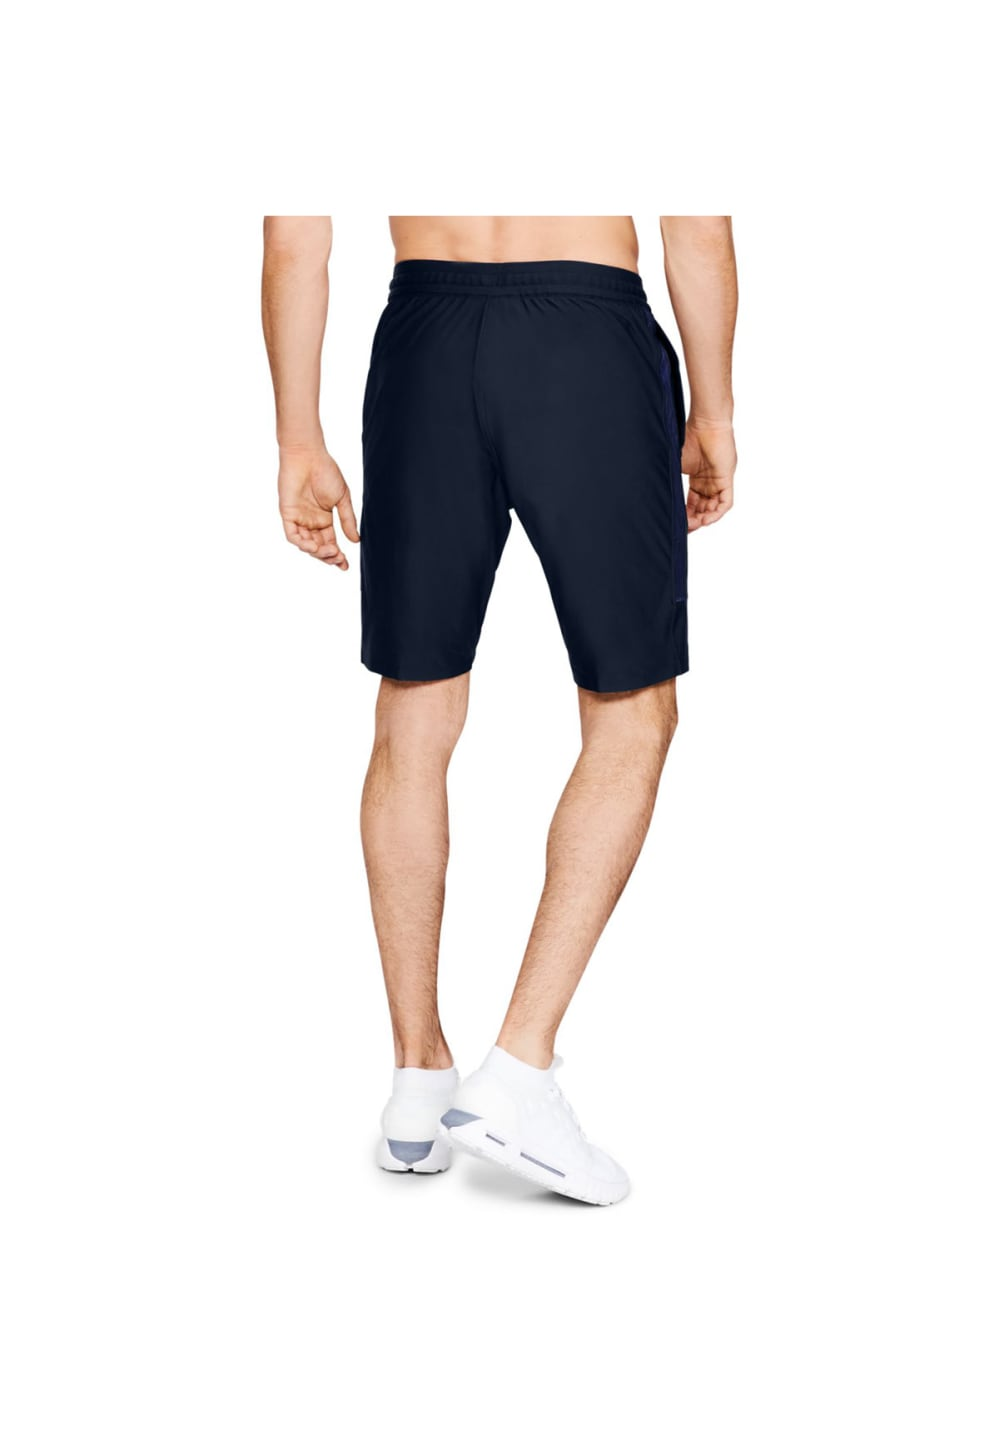 51b511298 Next. Under Armour. Threadborne Vanish Ftd Short - Running trousers for Men